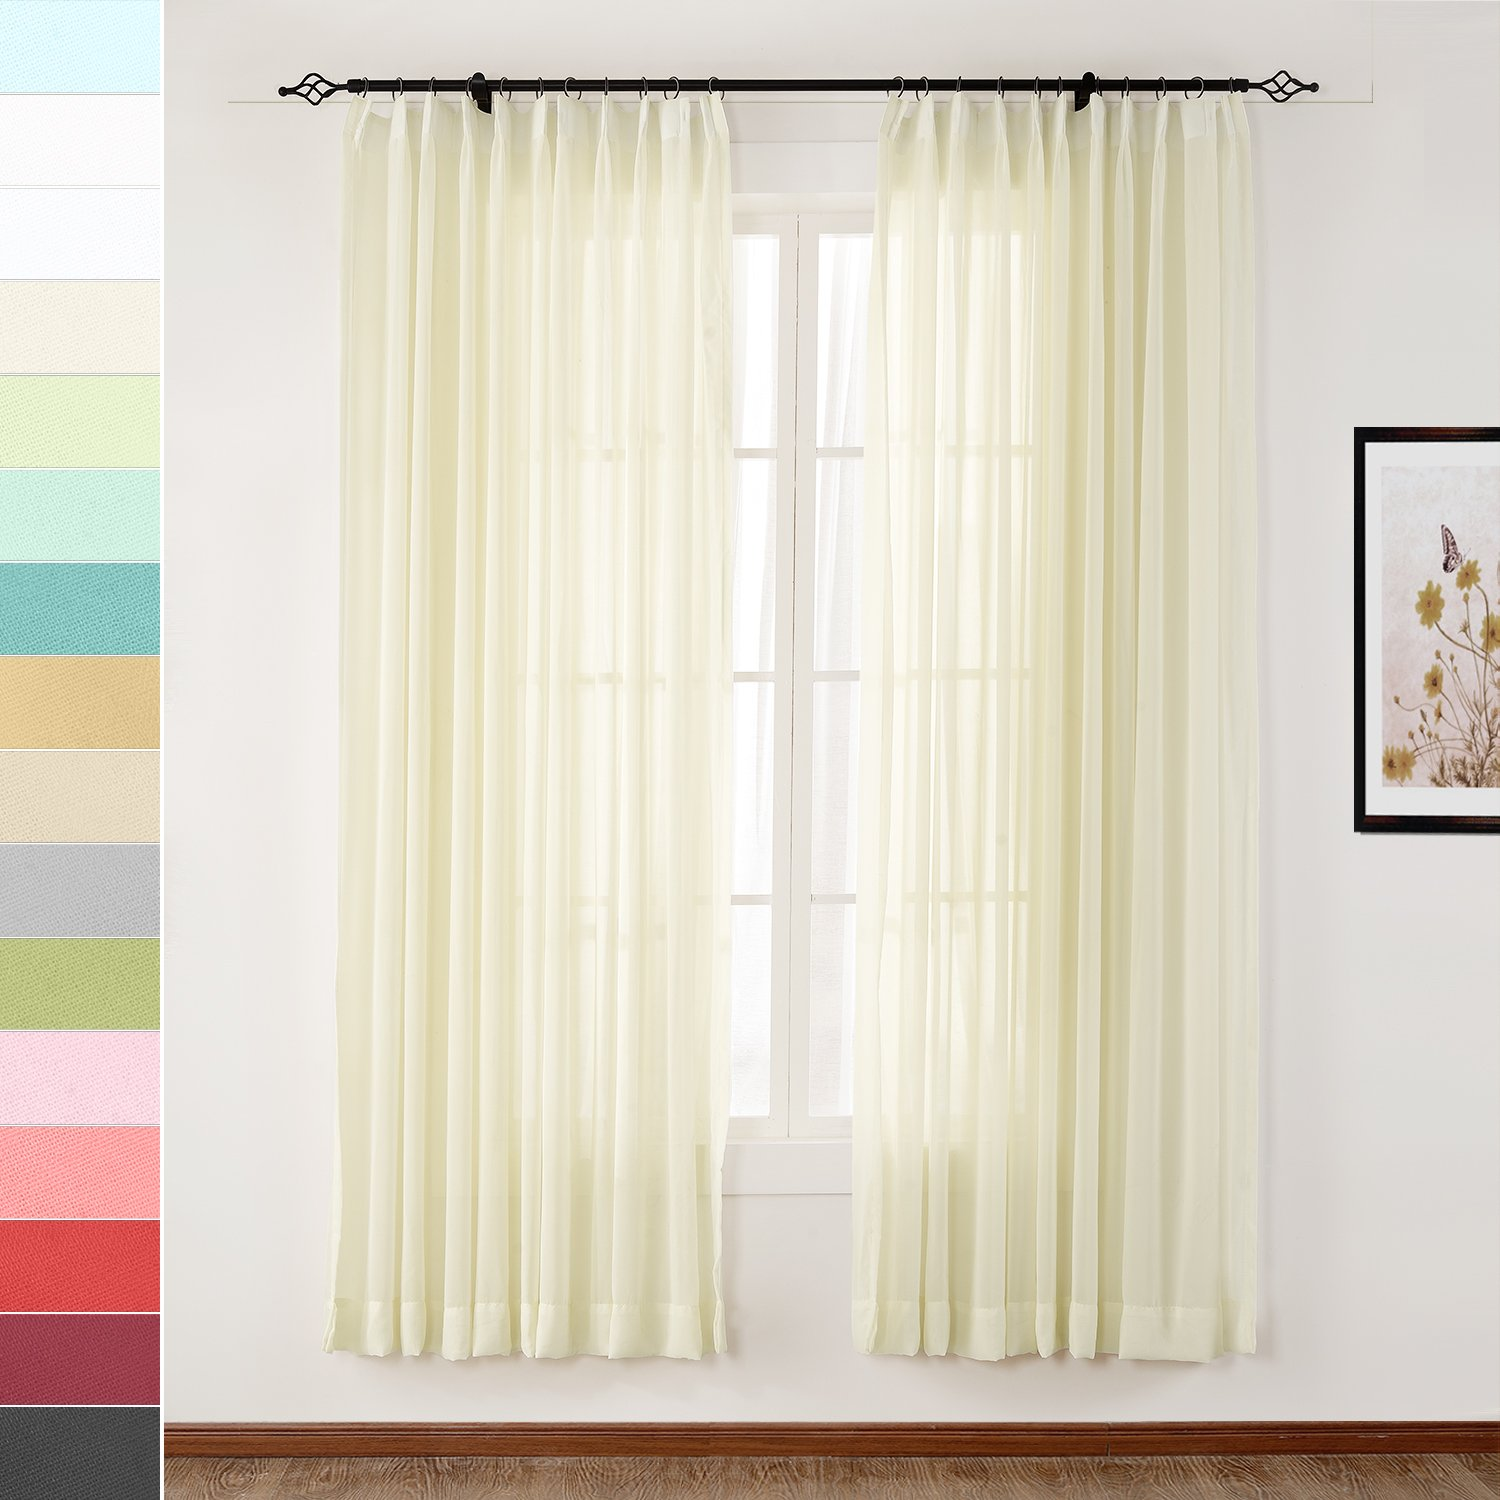 Macochico 100Wx 102L Ivory Outdoor Indoor Extra Wide Light Sheer Curtains Panels Privacy Protection dustproof for Bedroom Living Room Patio Garden Gazebo Cabana Backyard (1 Panel)